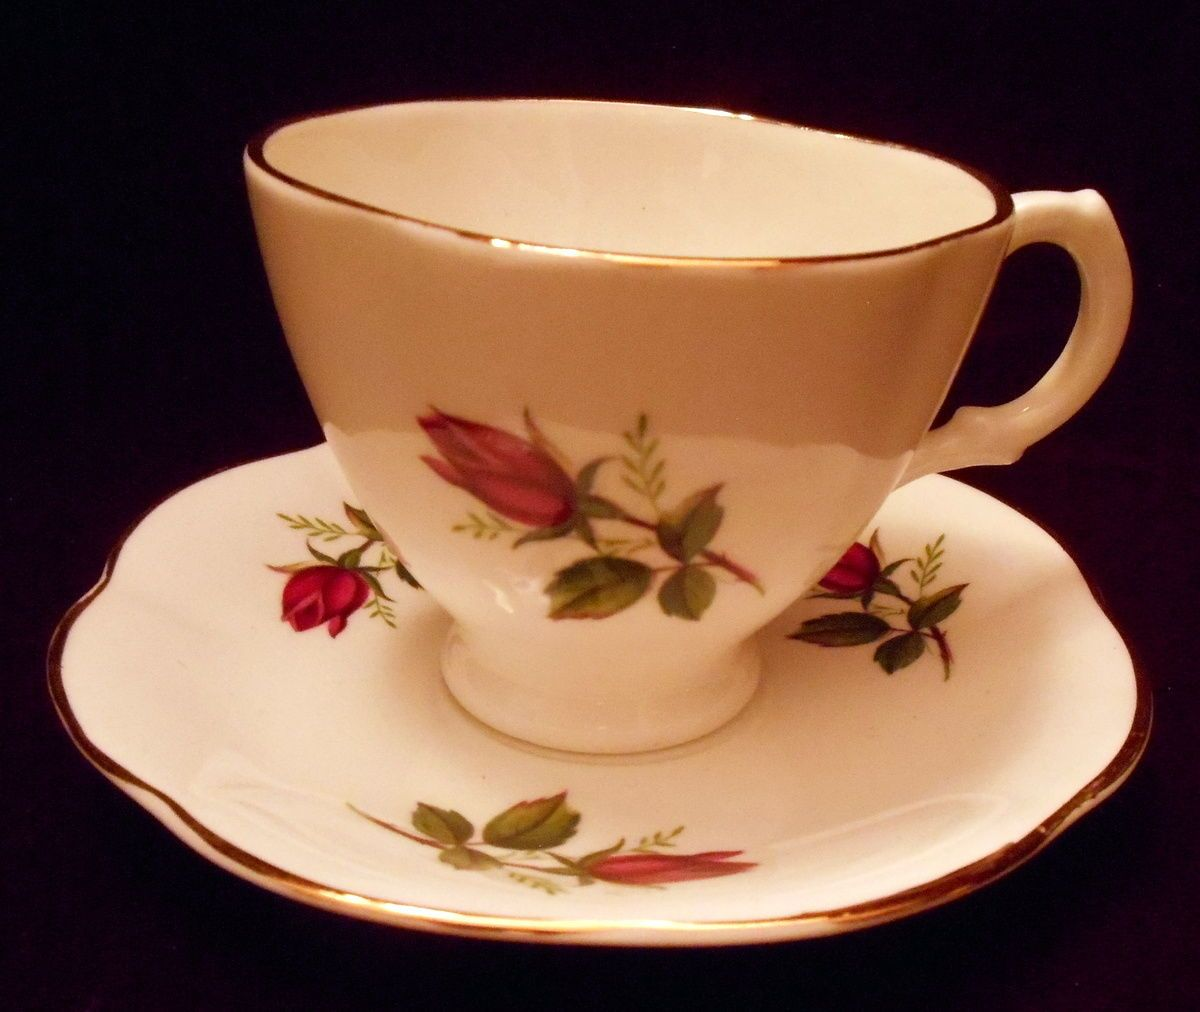 Royal #stuart #spencer #stevenson tea cup & saucer bone china england red rose bu,  View more on the LINK: 	http://www.zeppy.io/product/gb/2/371715793843/